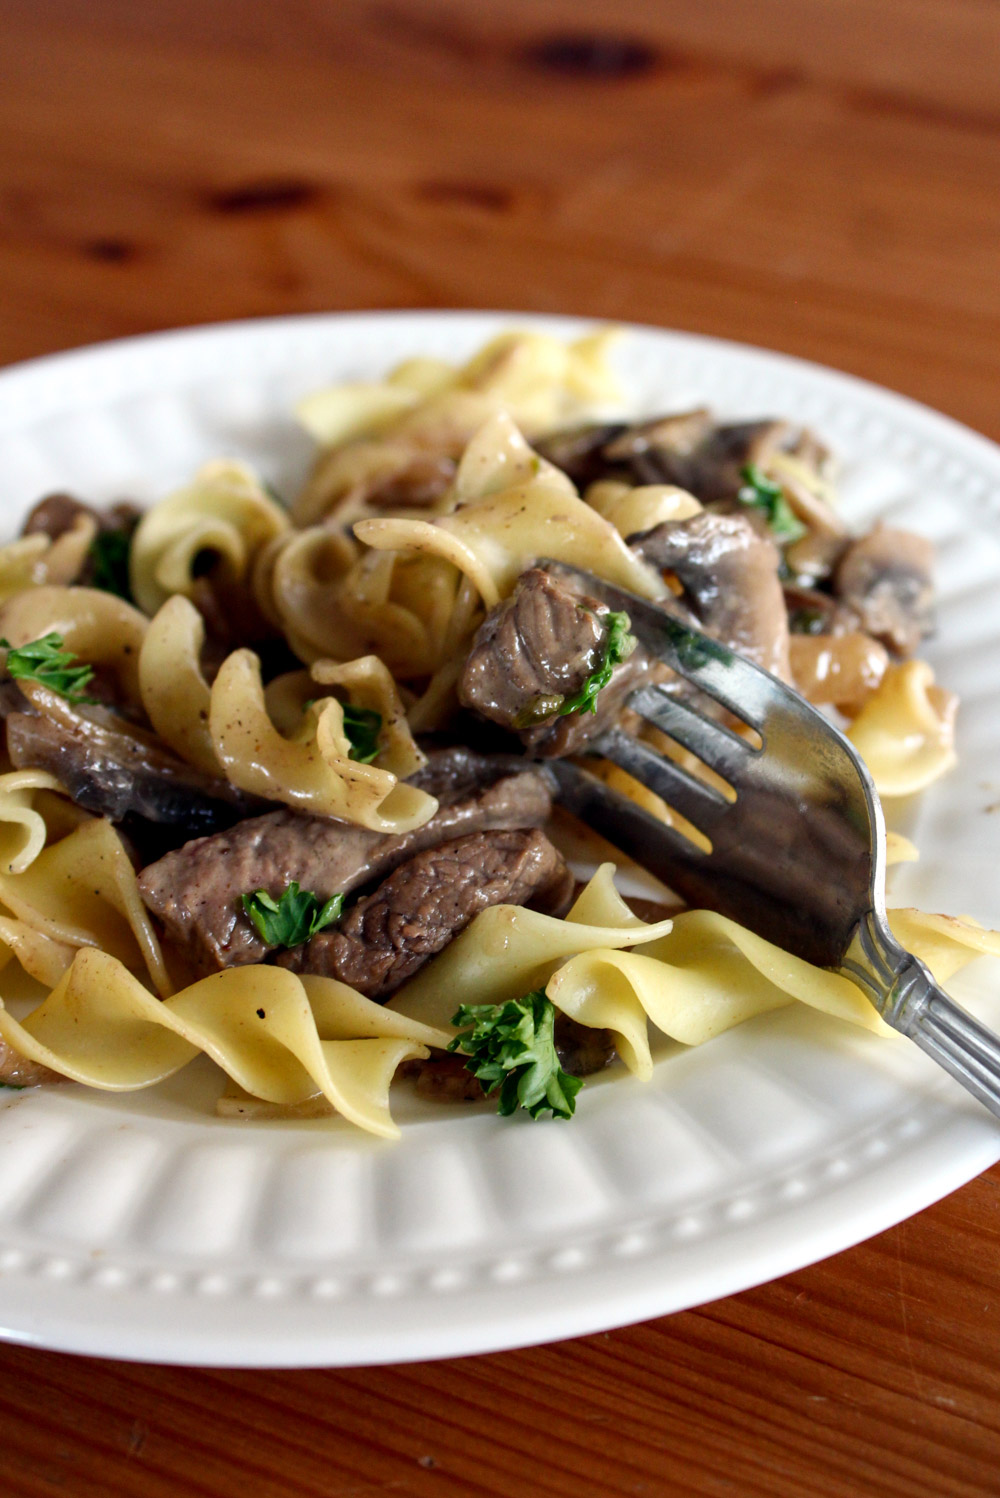 Beef Stroganoff with Homemade Sour Cream - Bake, Braise & Broil